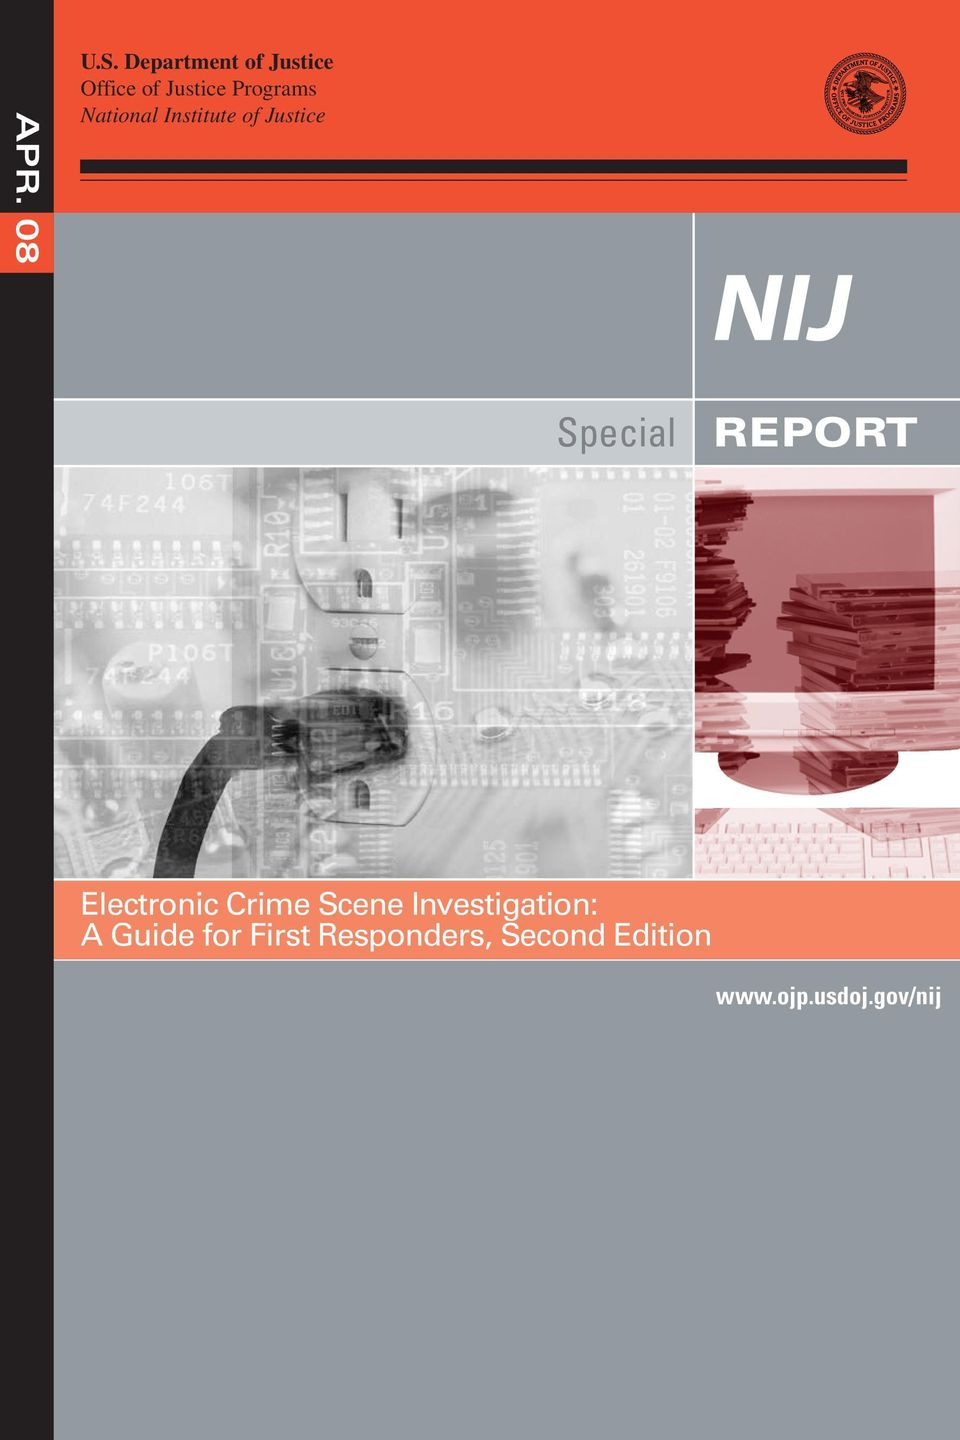 National Institute of Justice Special REPORT